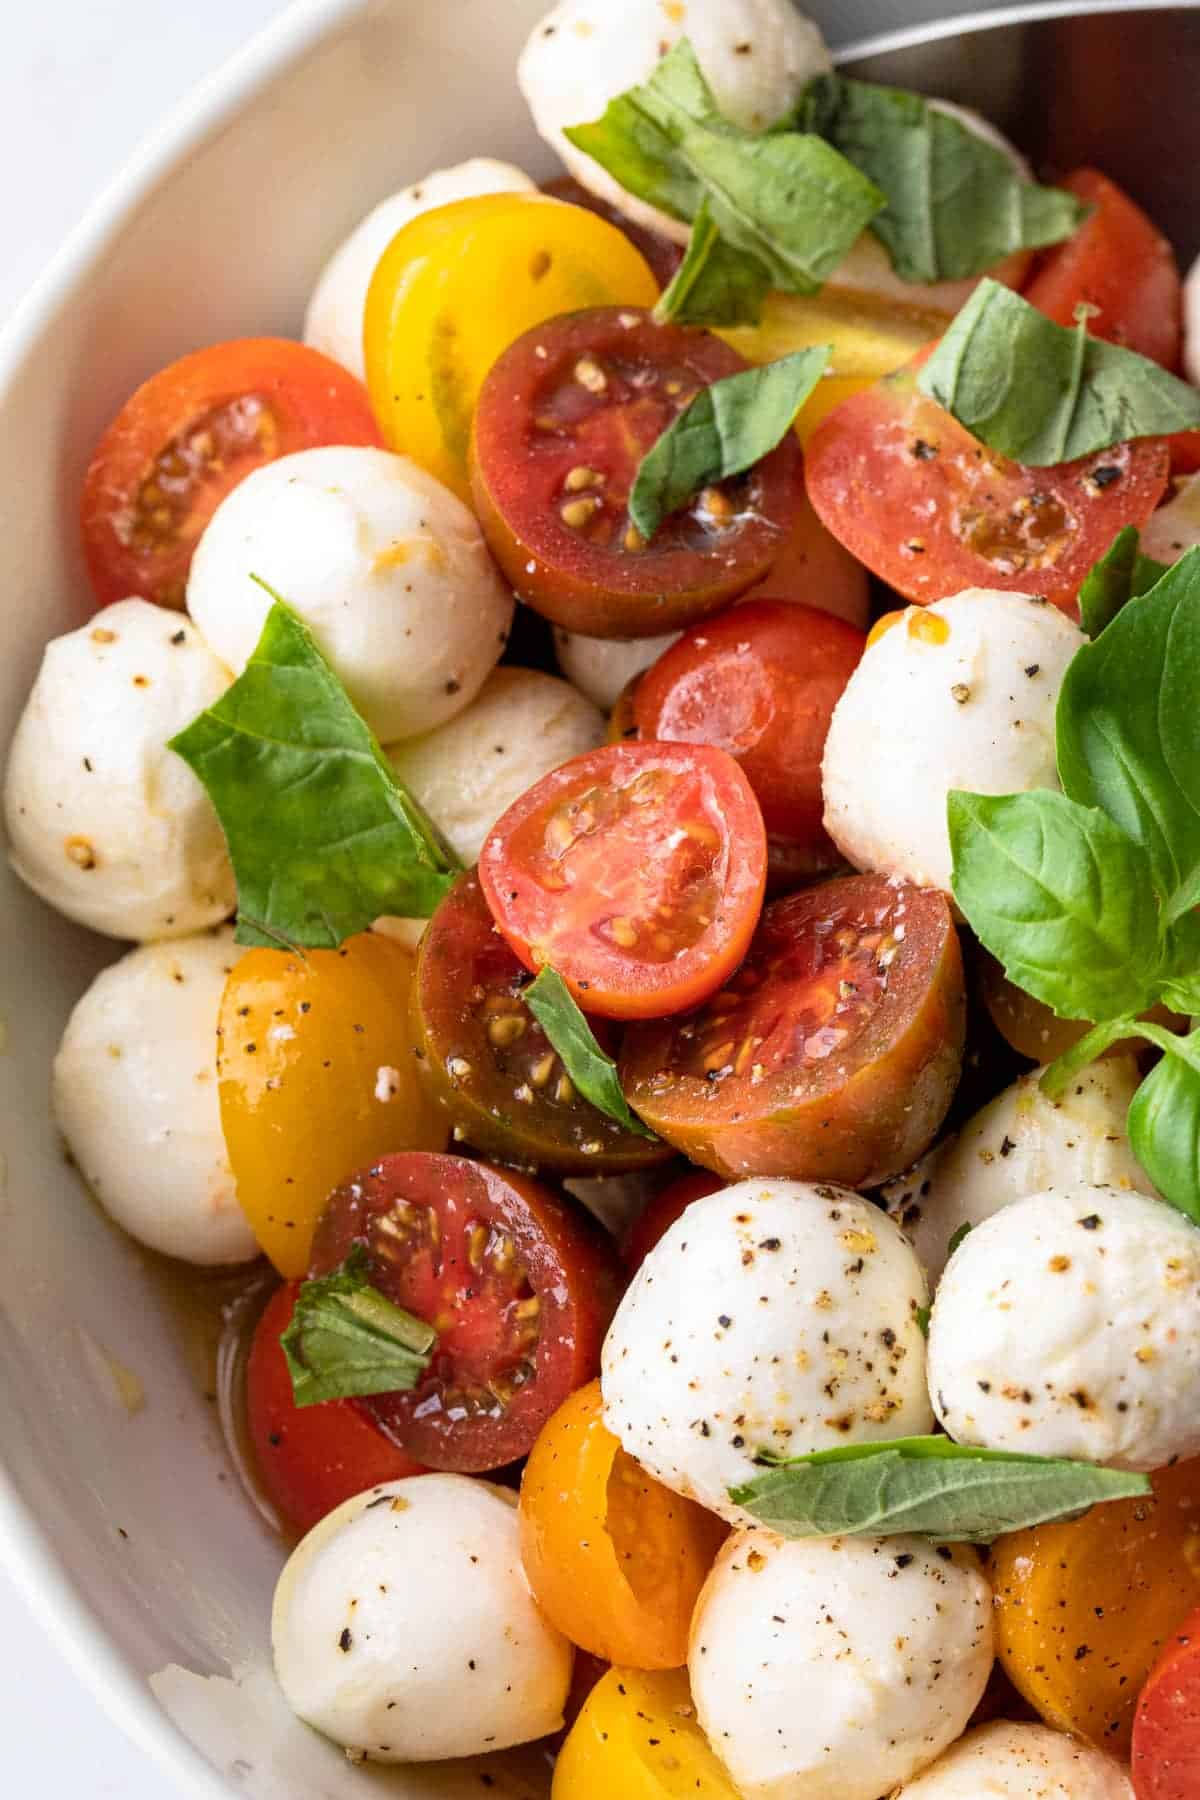 cherry tomatoes and mozzarella balls with basil leaves in a salad bowl